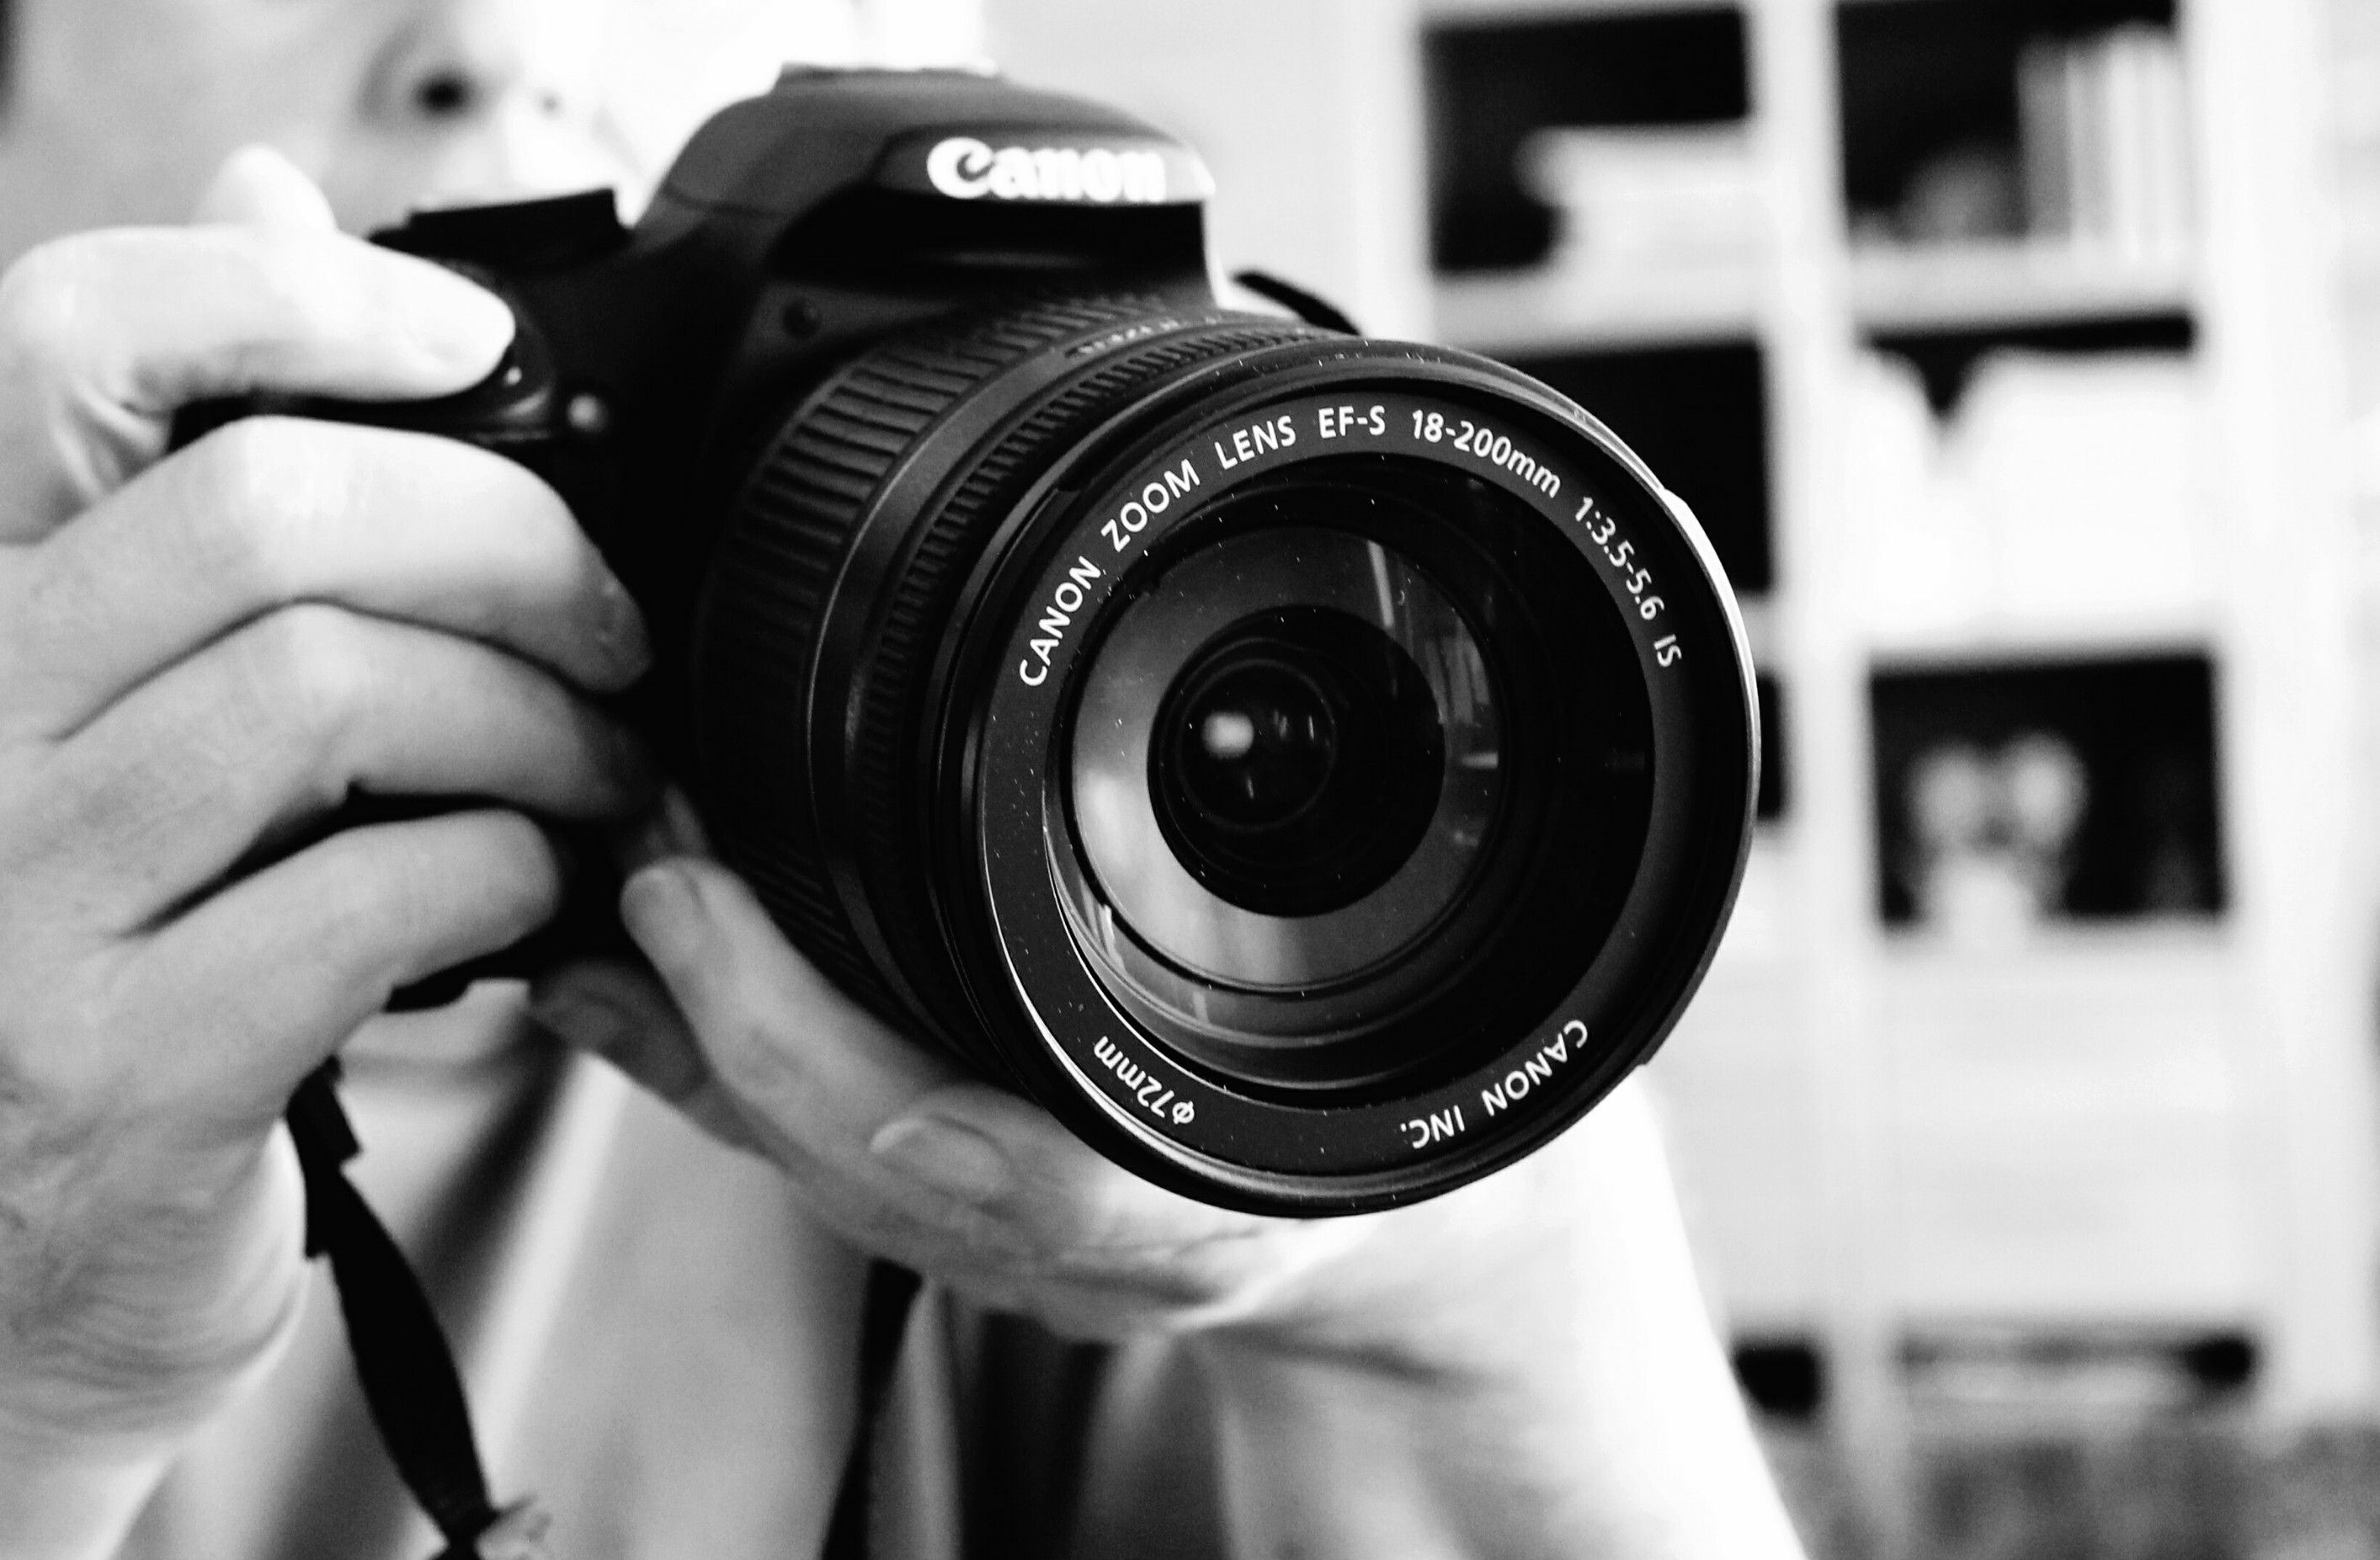 A very important #circle here ;)) ... #blackandwhite #photography #camera #canon